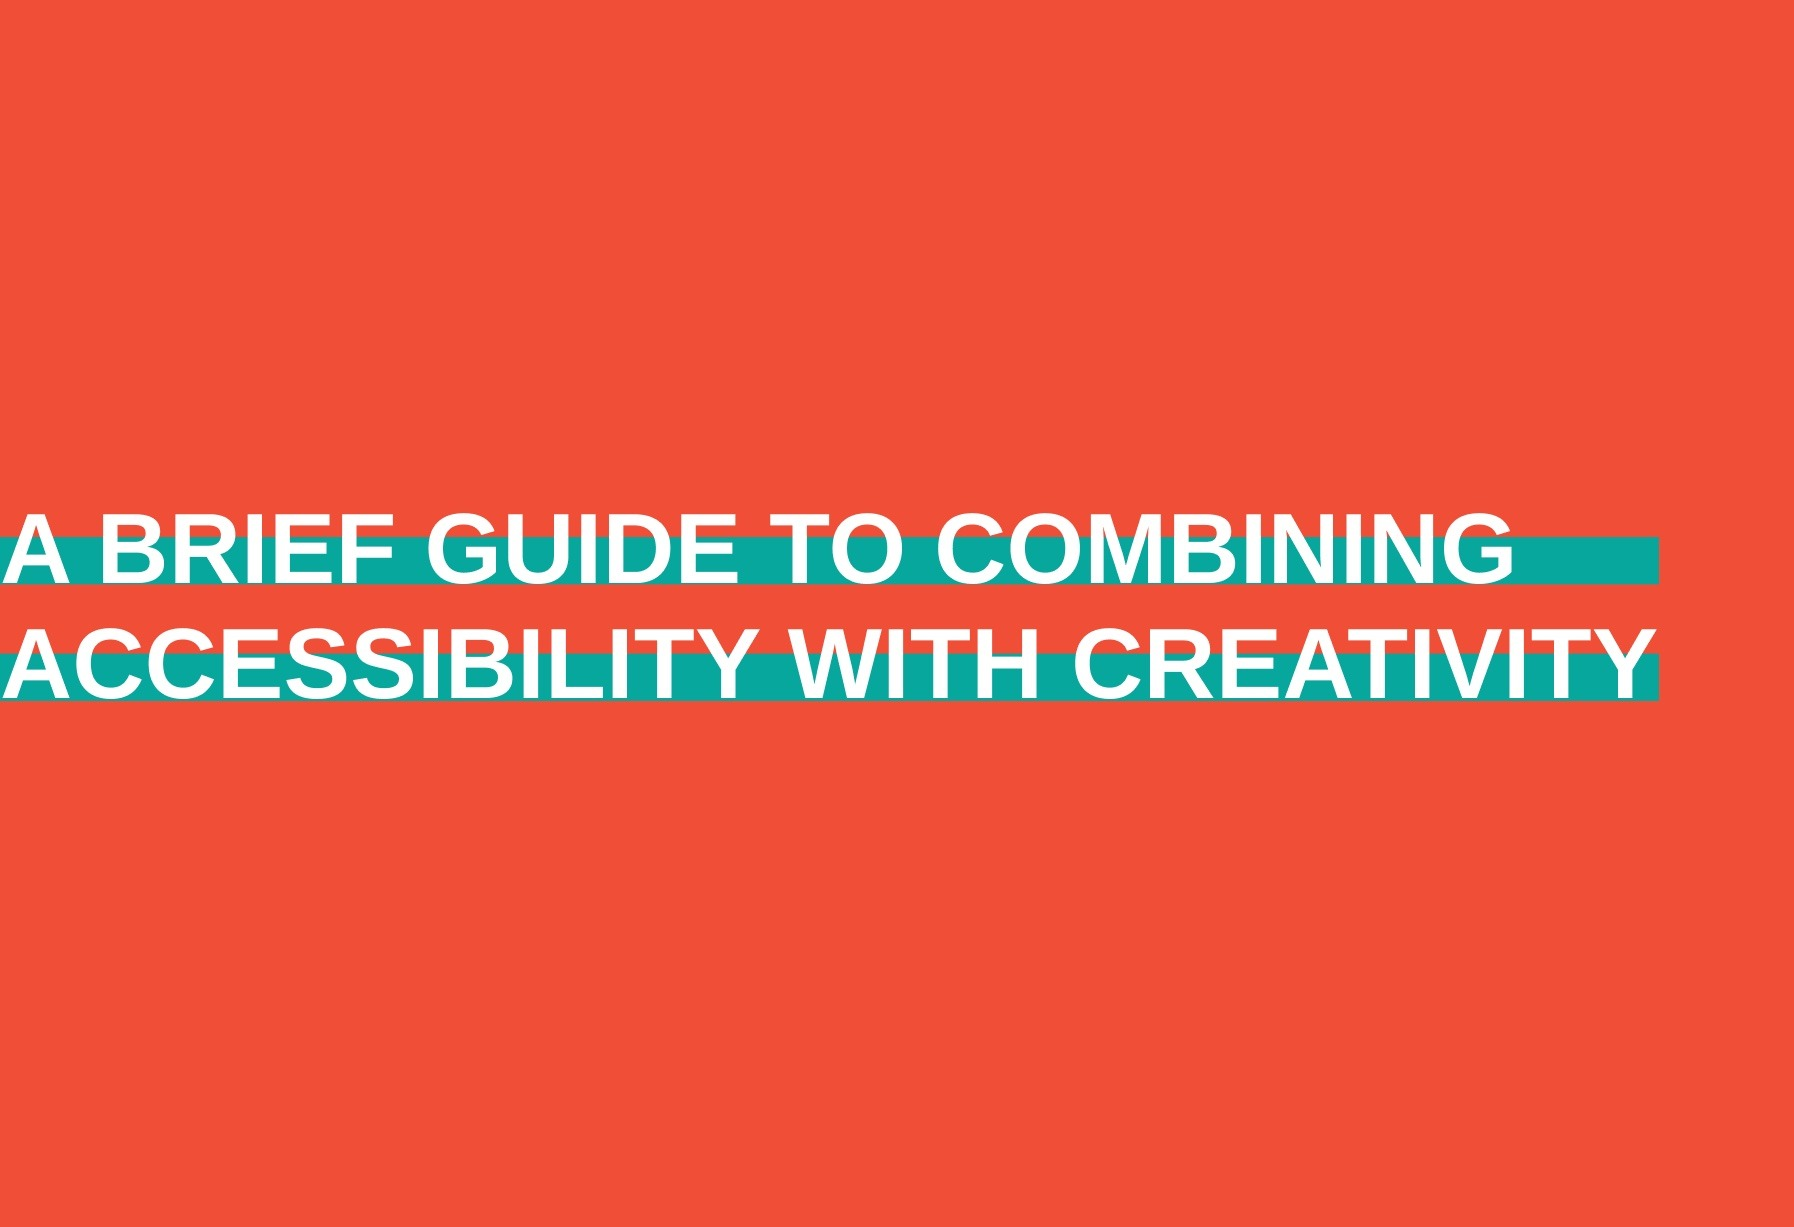 A Brief Guide to Combining Accessibilitywith Creativity